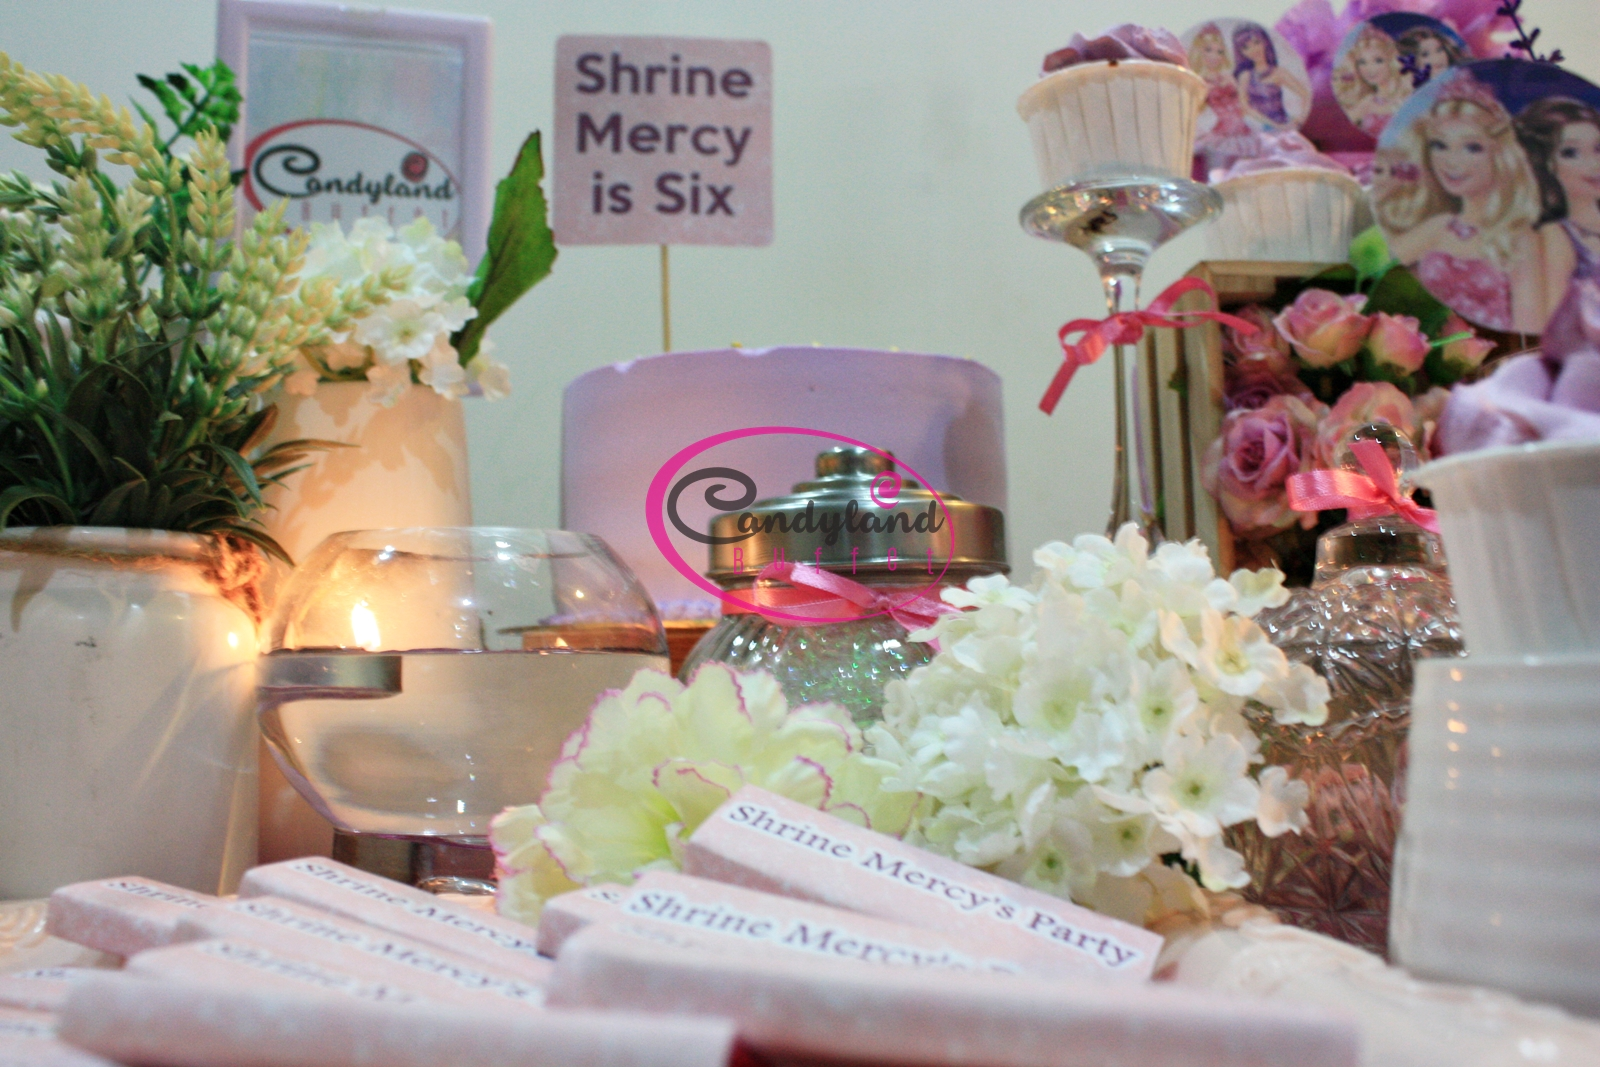 Barbie birthday theme candyland buffet barbie birthday theme contact 0166088067 for more details izmirmasajfo Gallery